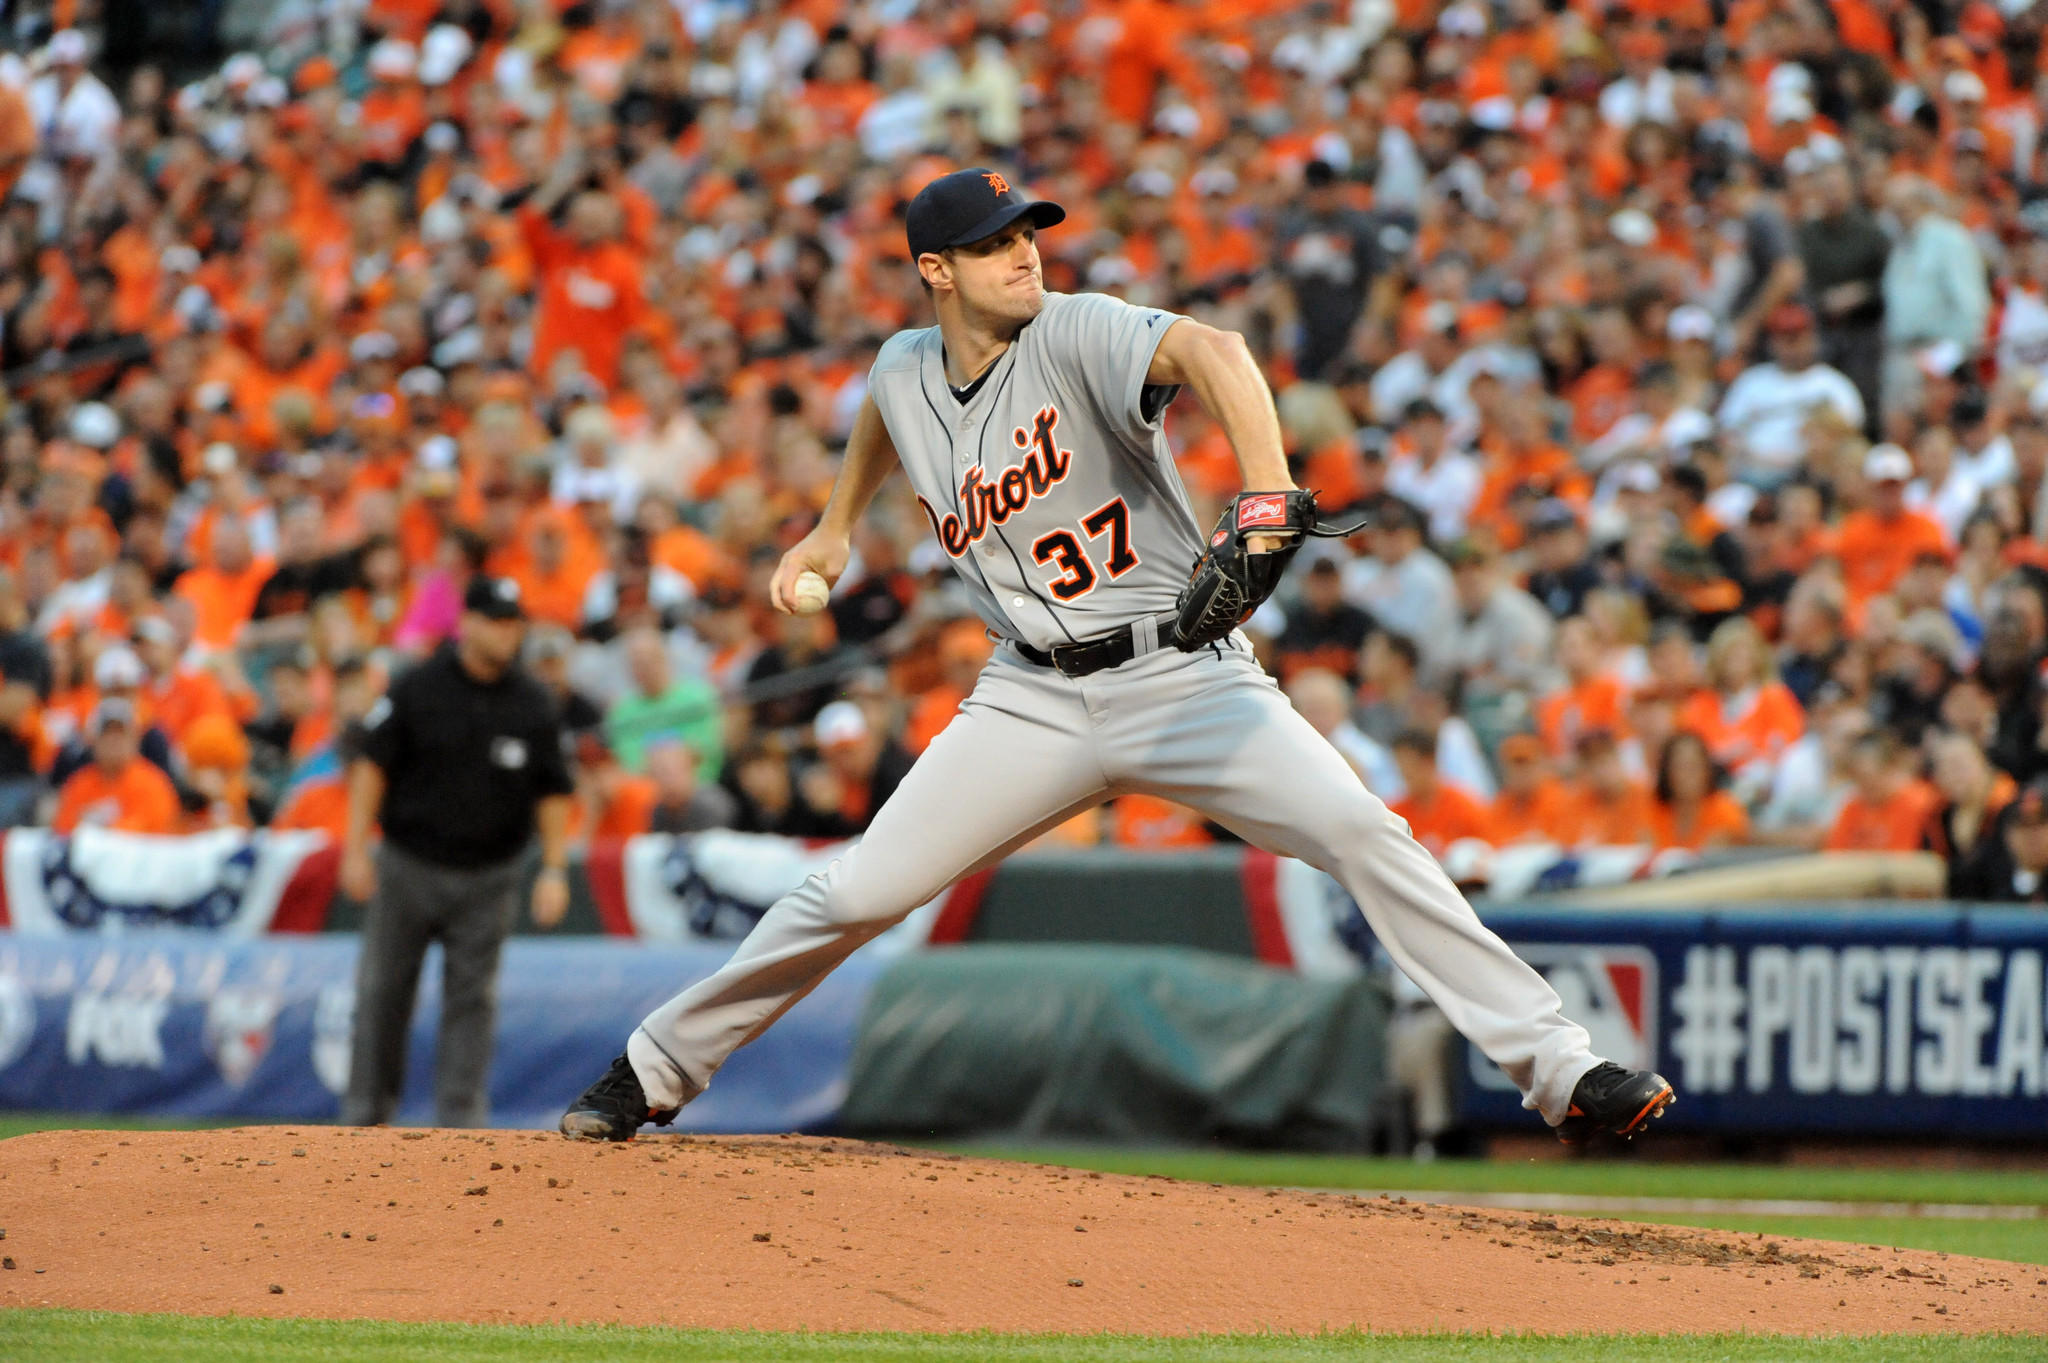 Max Scherzer pitches during the second inning of Game 1 of the ALDS between the Orioles and Tigers.